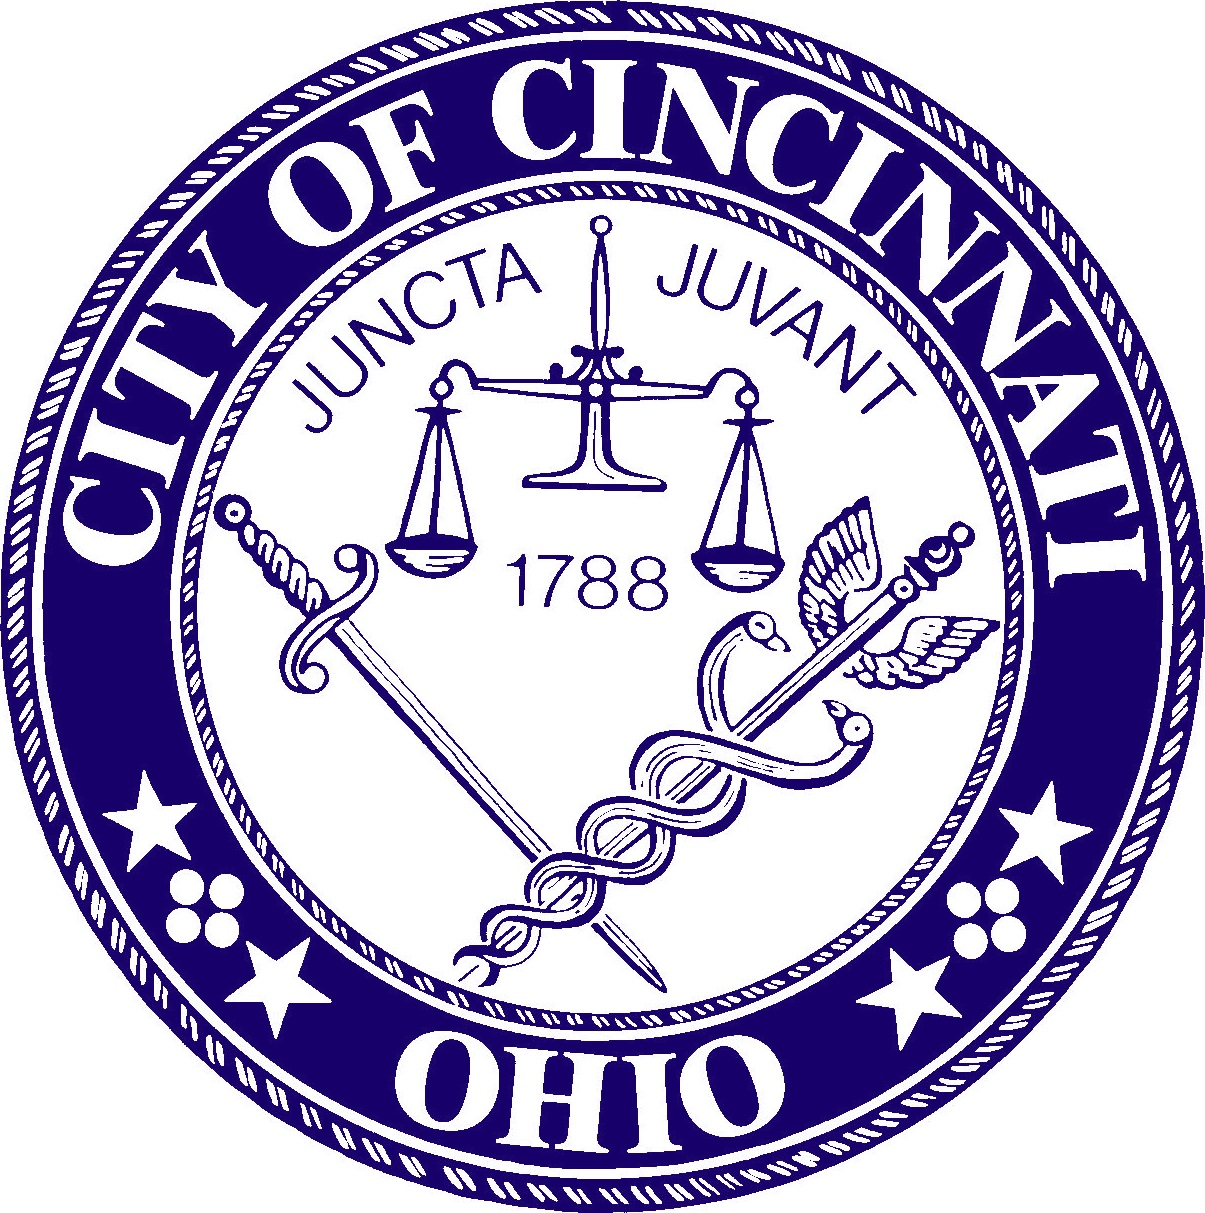 Seal_of_the_City_of_Cincinnati_%28Ohio%29.jpg